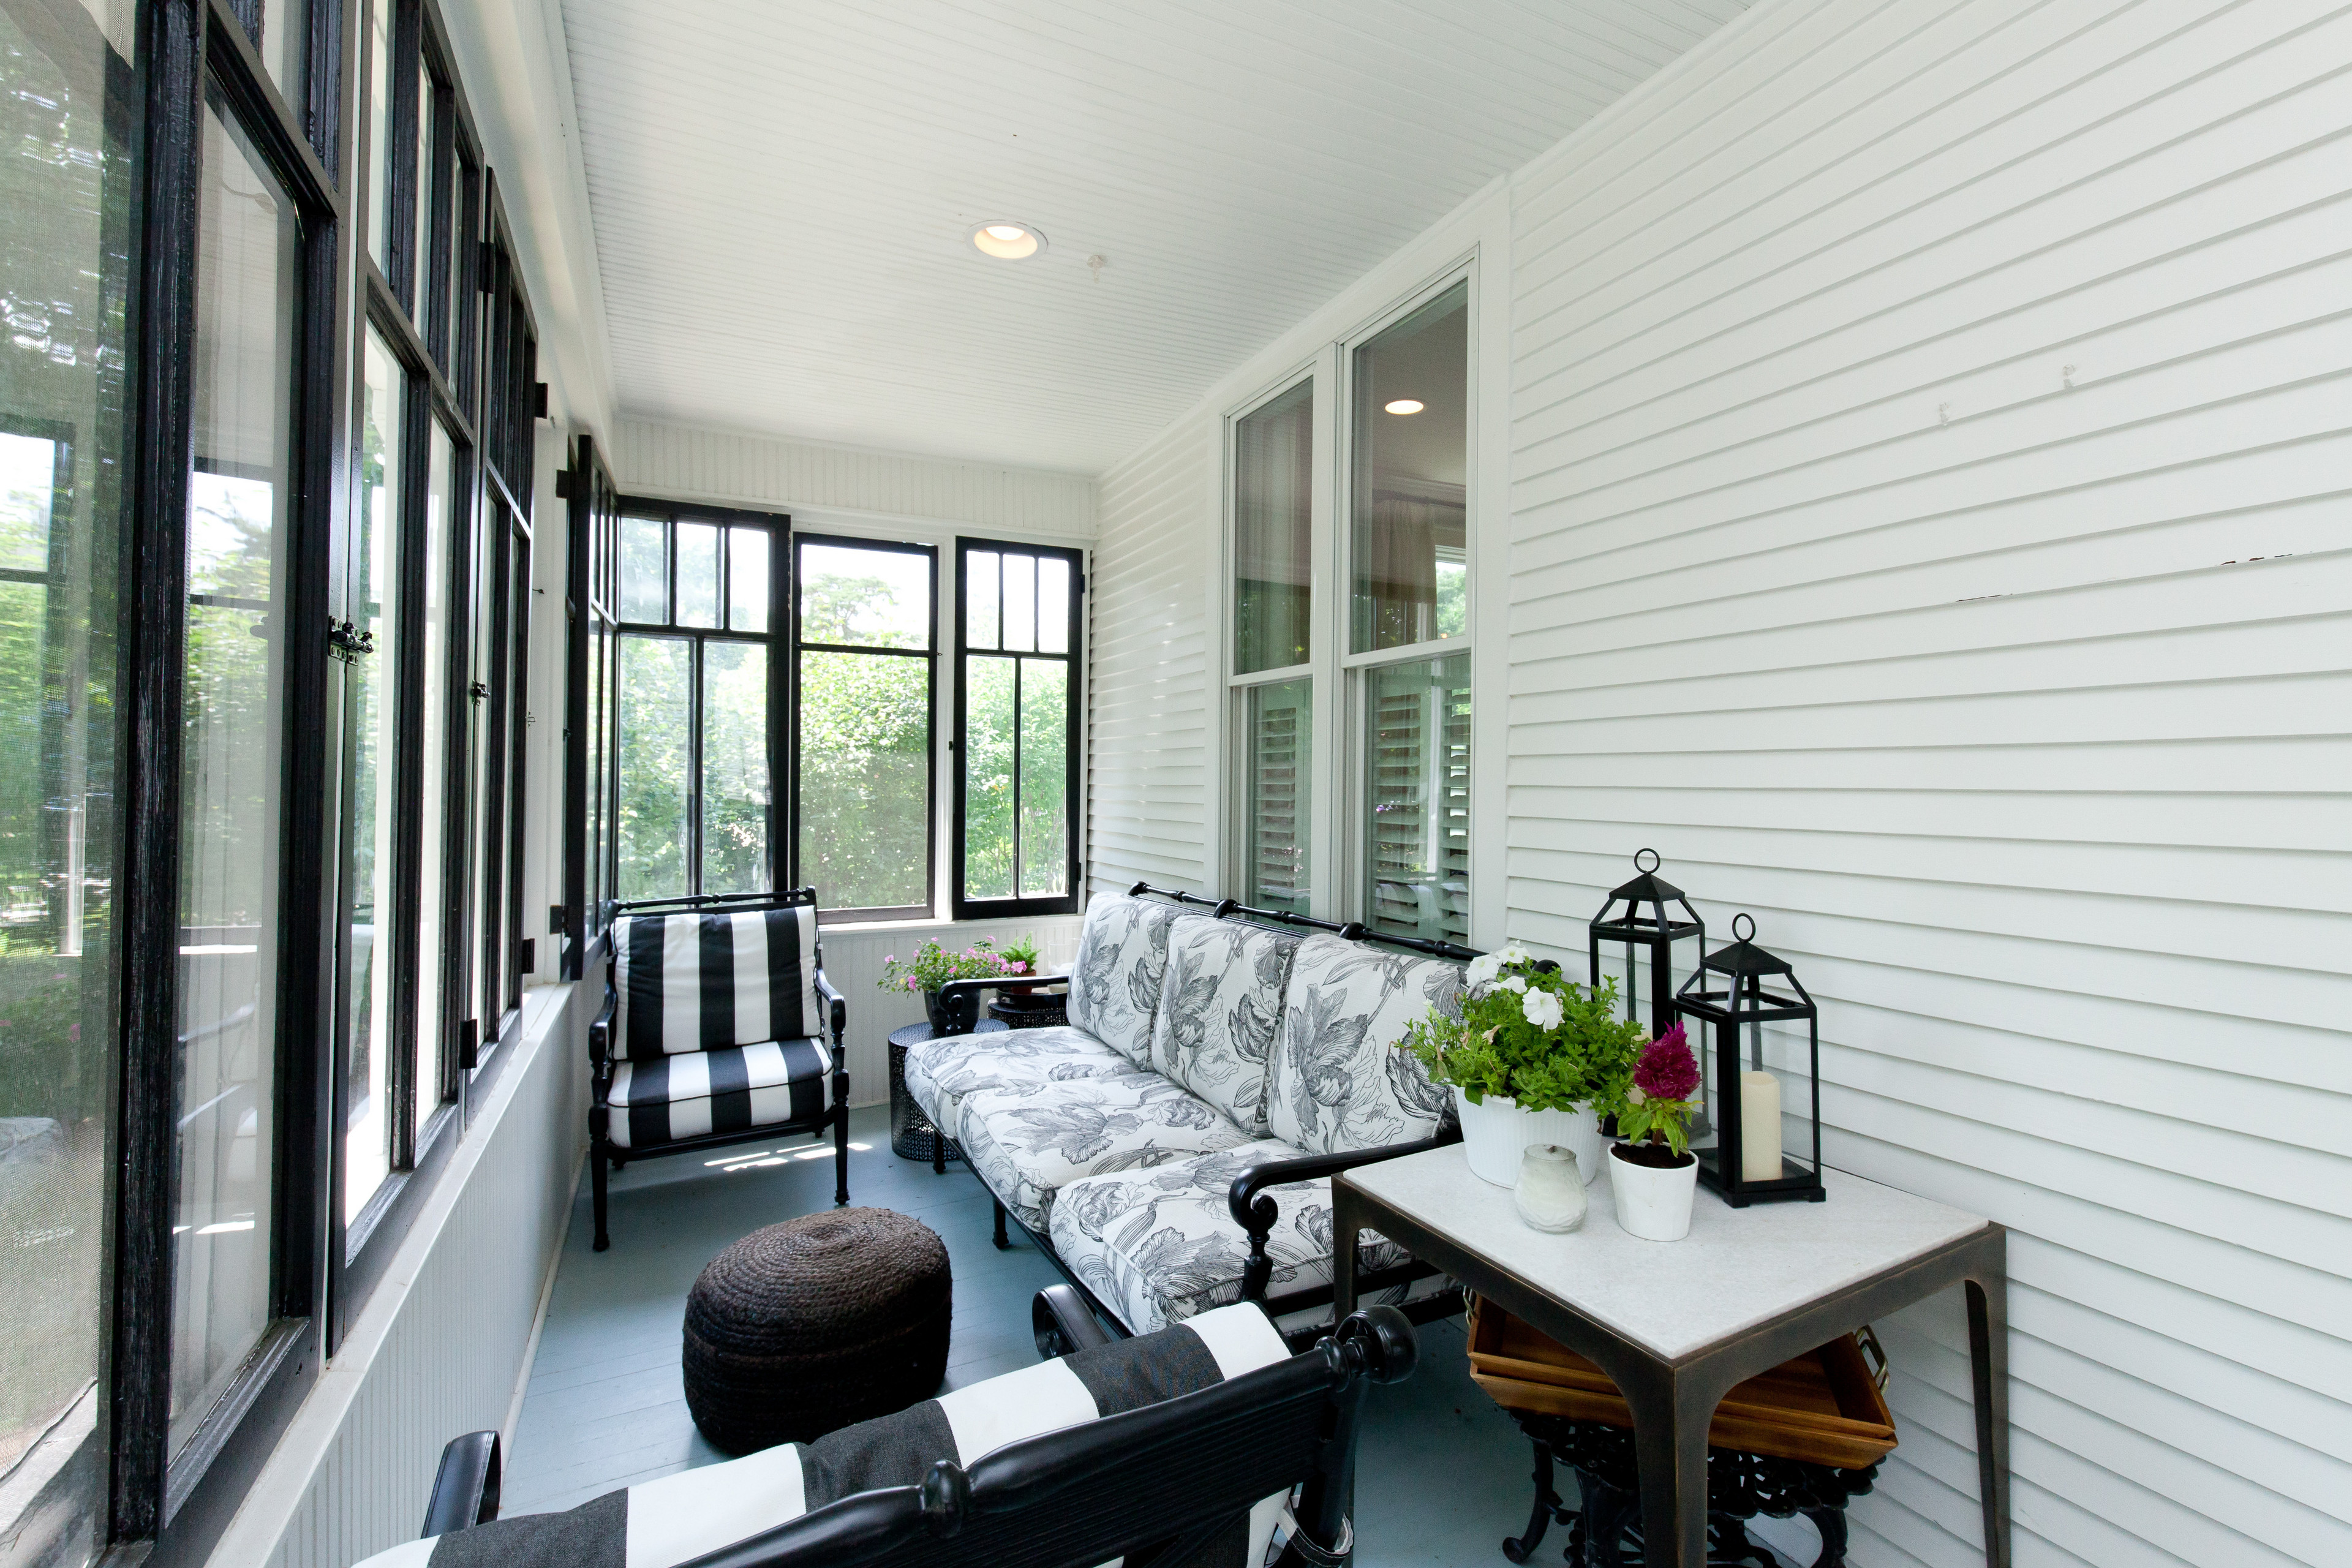 75 Beautiful Screened In Front Porch Pictures Ideas February 2021 Houzz